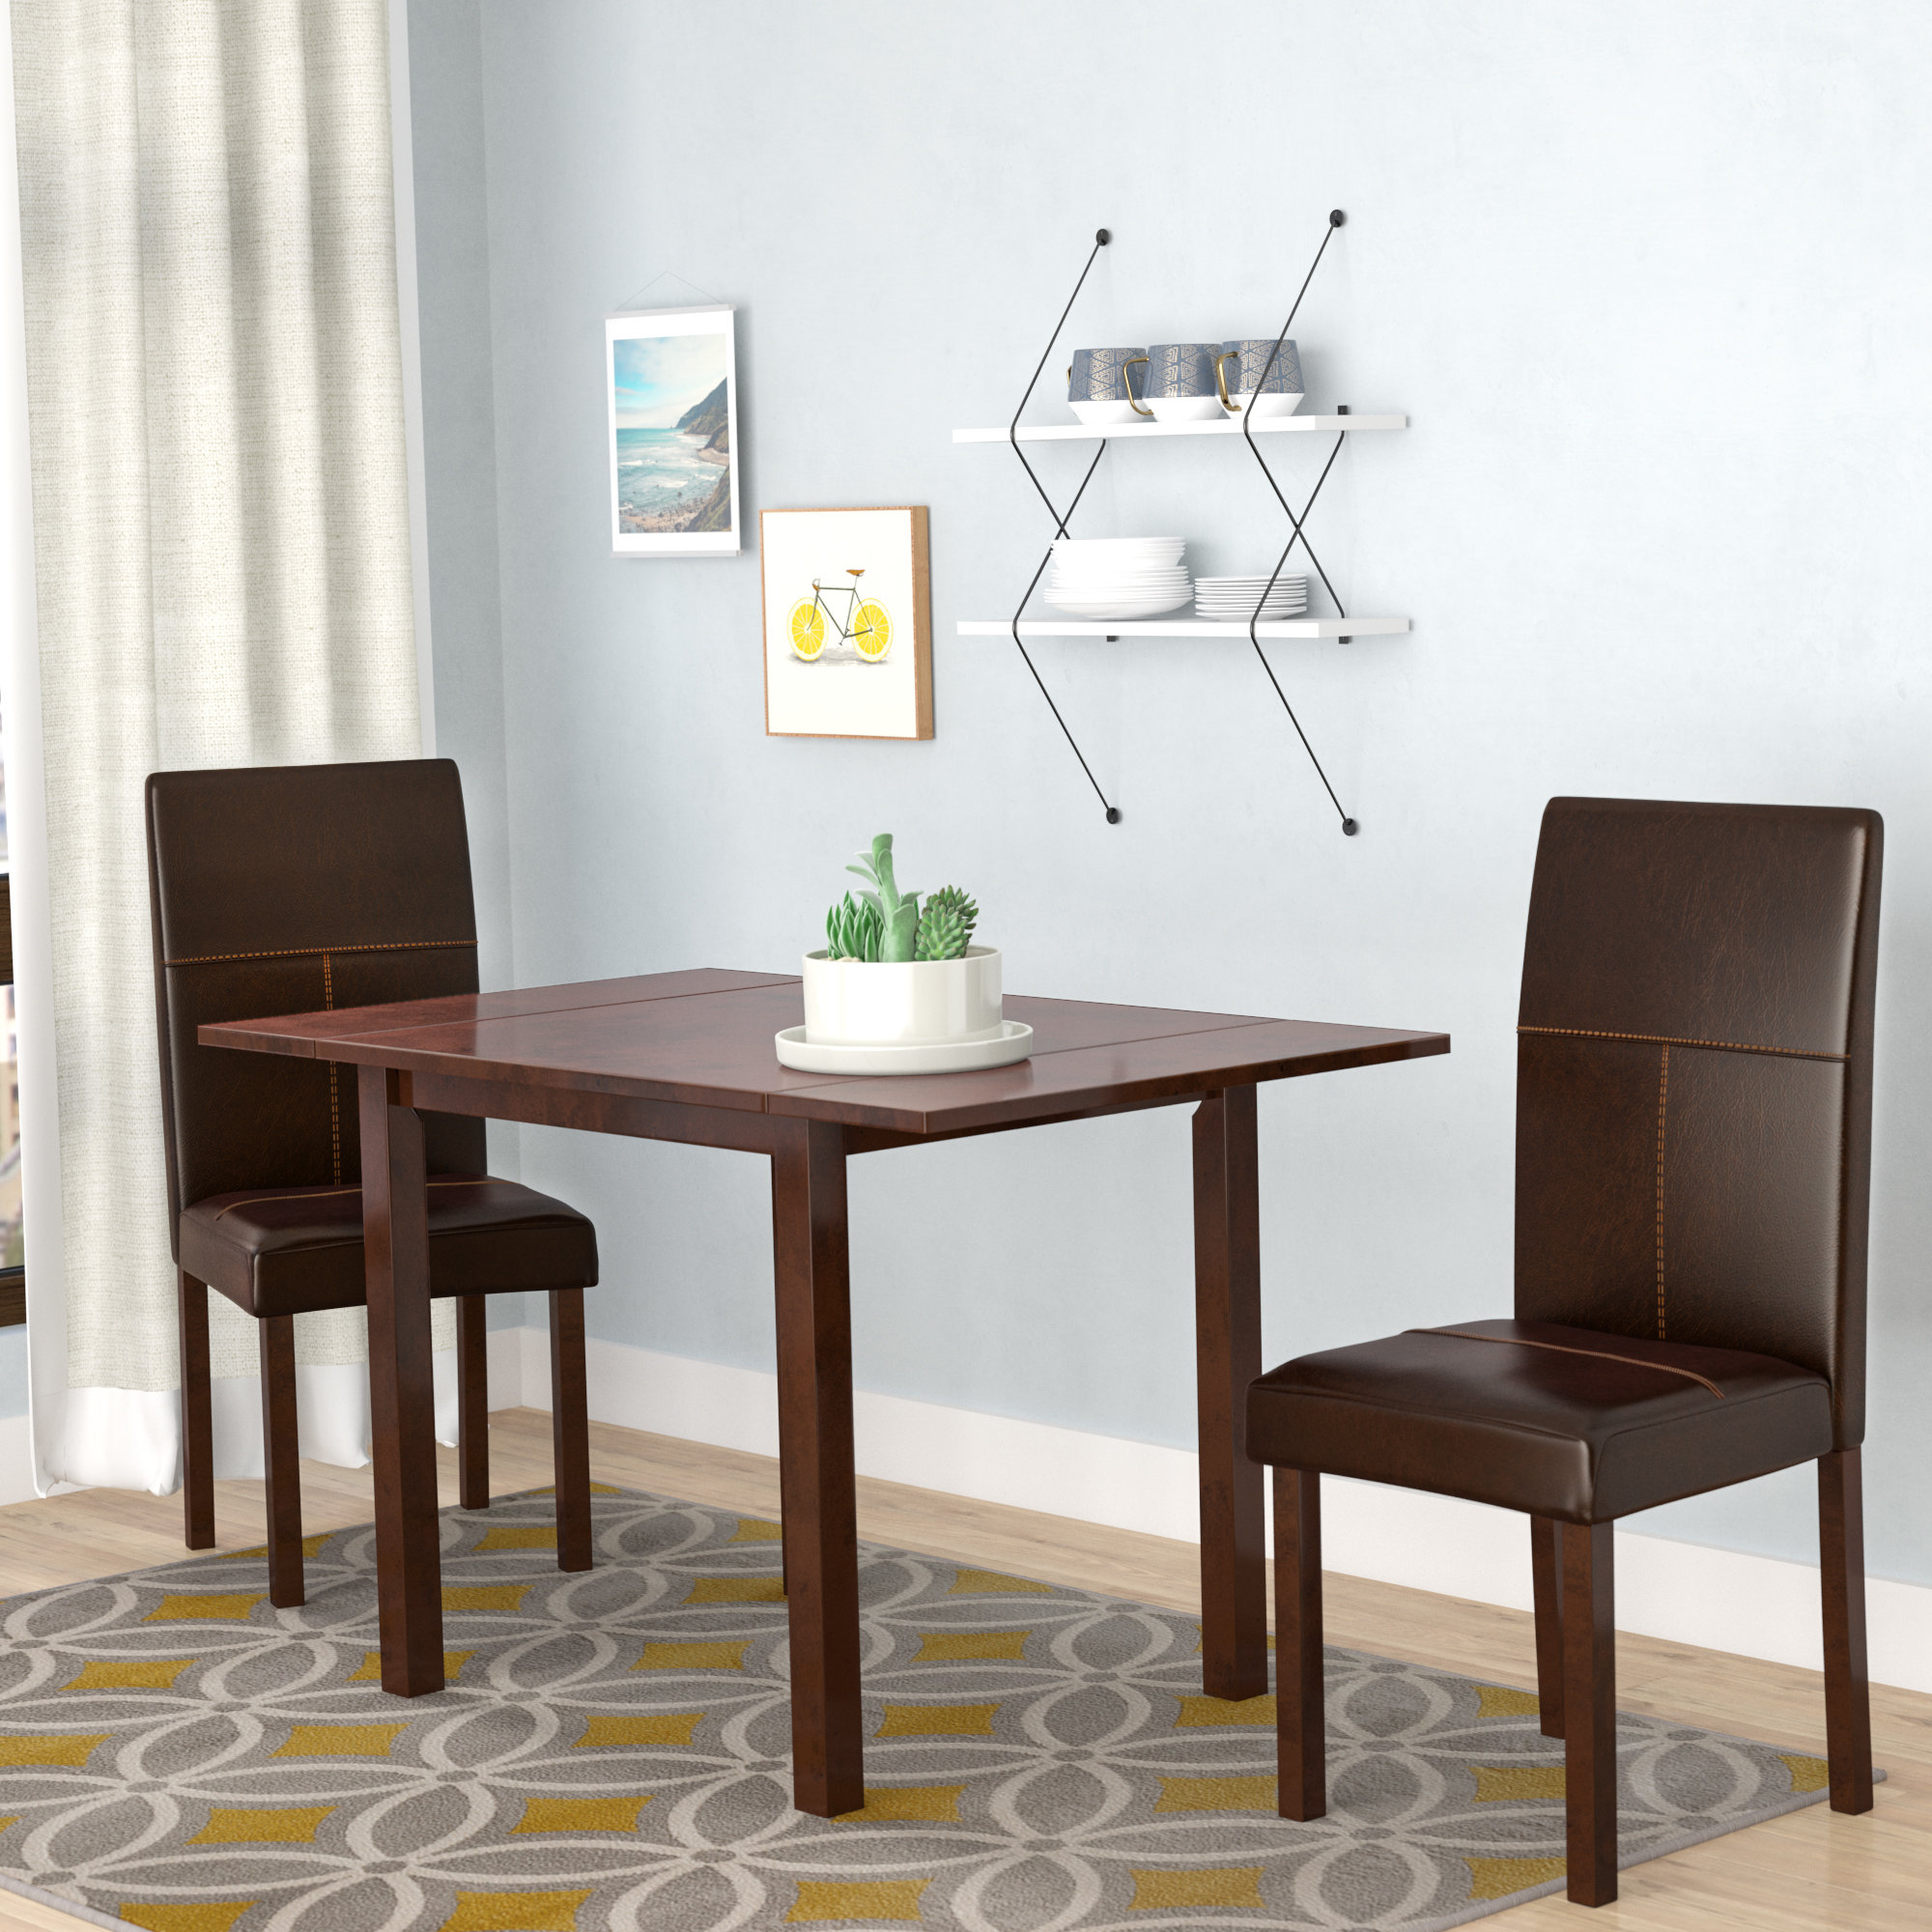 Baillie 3 Piece Dining Sets Pertaining To Well Known Lorenzen 3 Piece Dining Set (View 4 of 20)